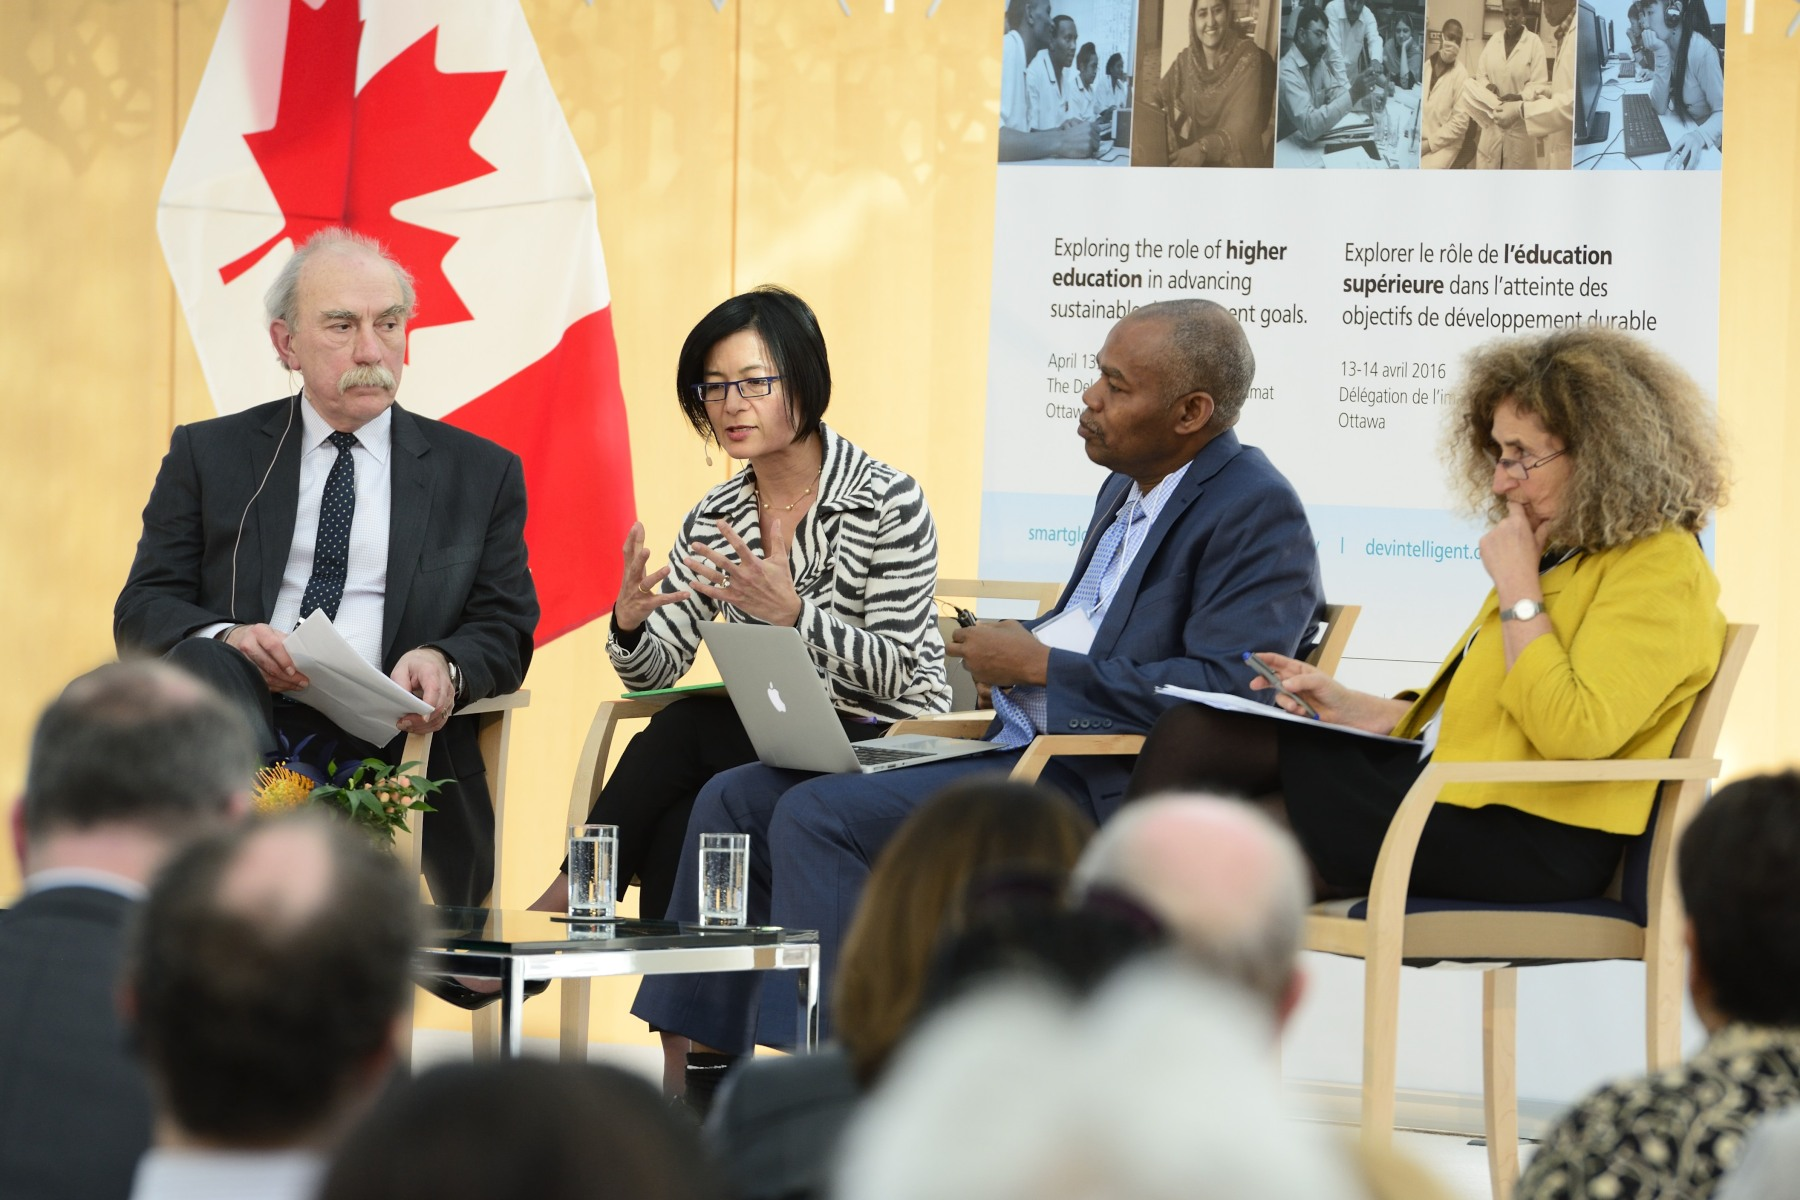 A lively panel discussion with Ms. Reeta Roy, Dr. Leonard Wantchekon and Dr. Eva Egron-Polak followed.  The discussion was moderated by Dr. Greg Mora.